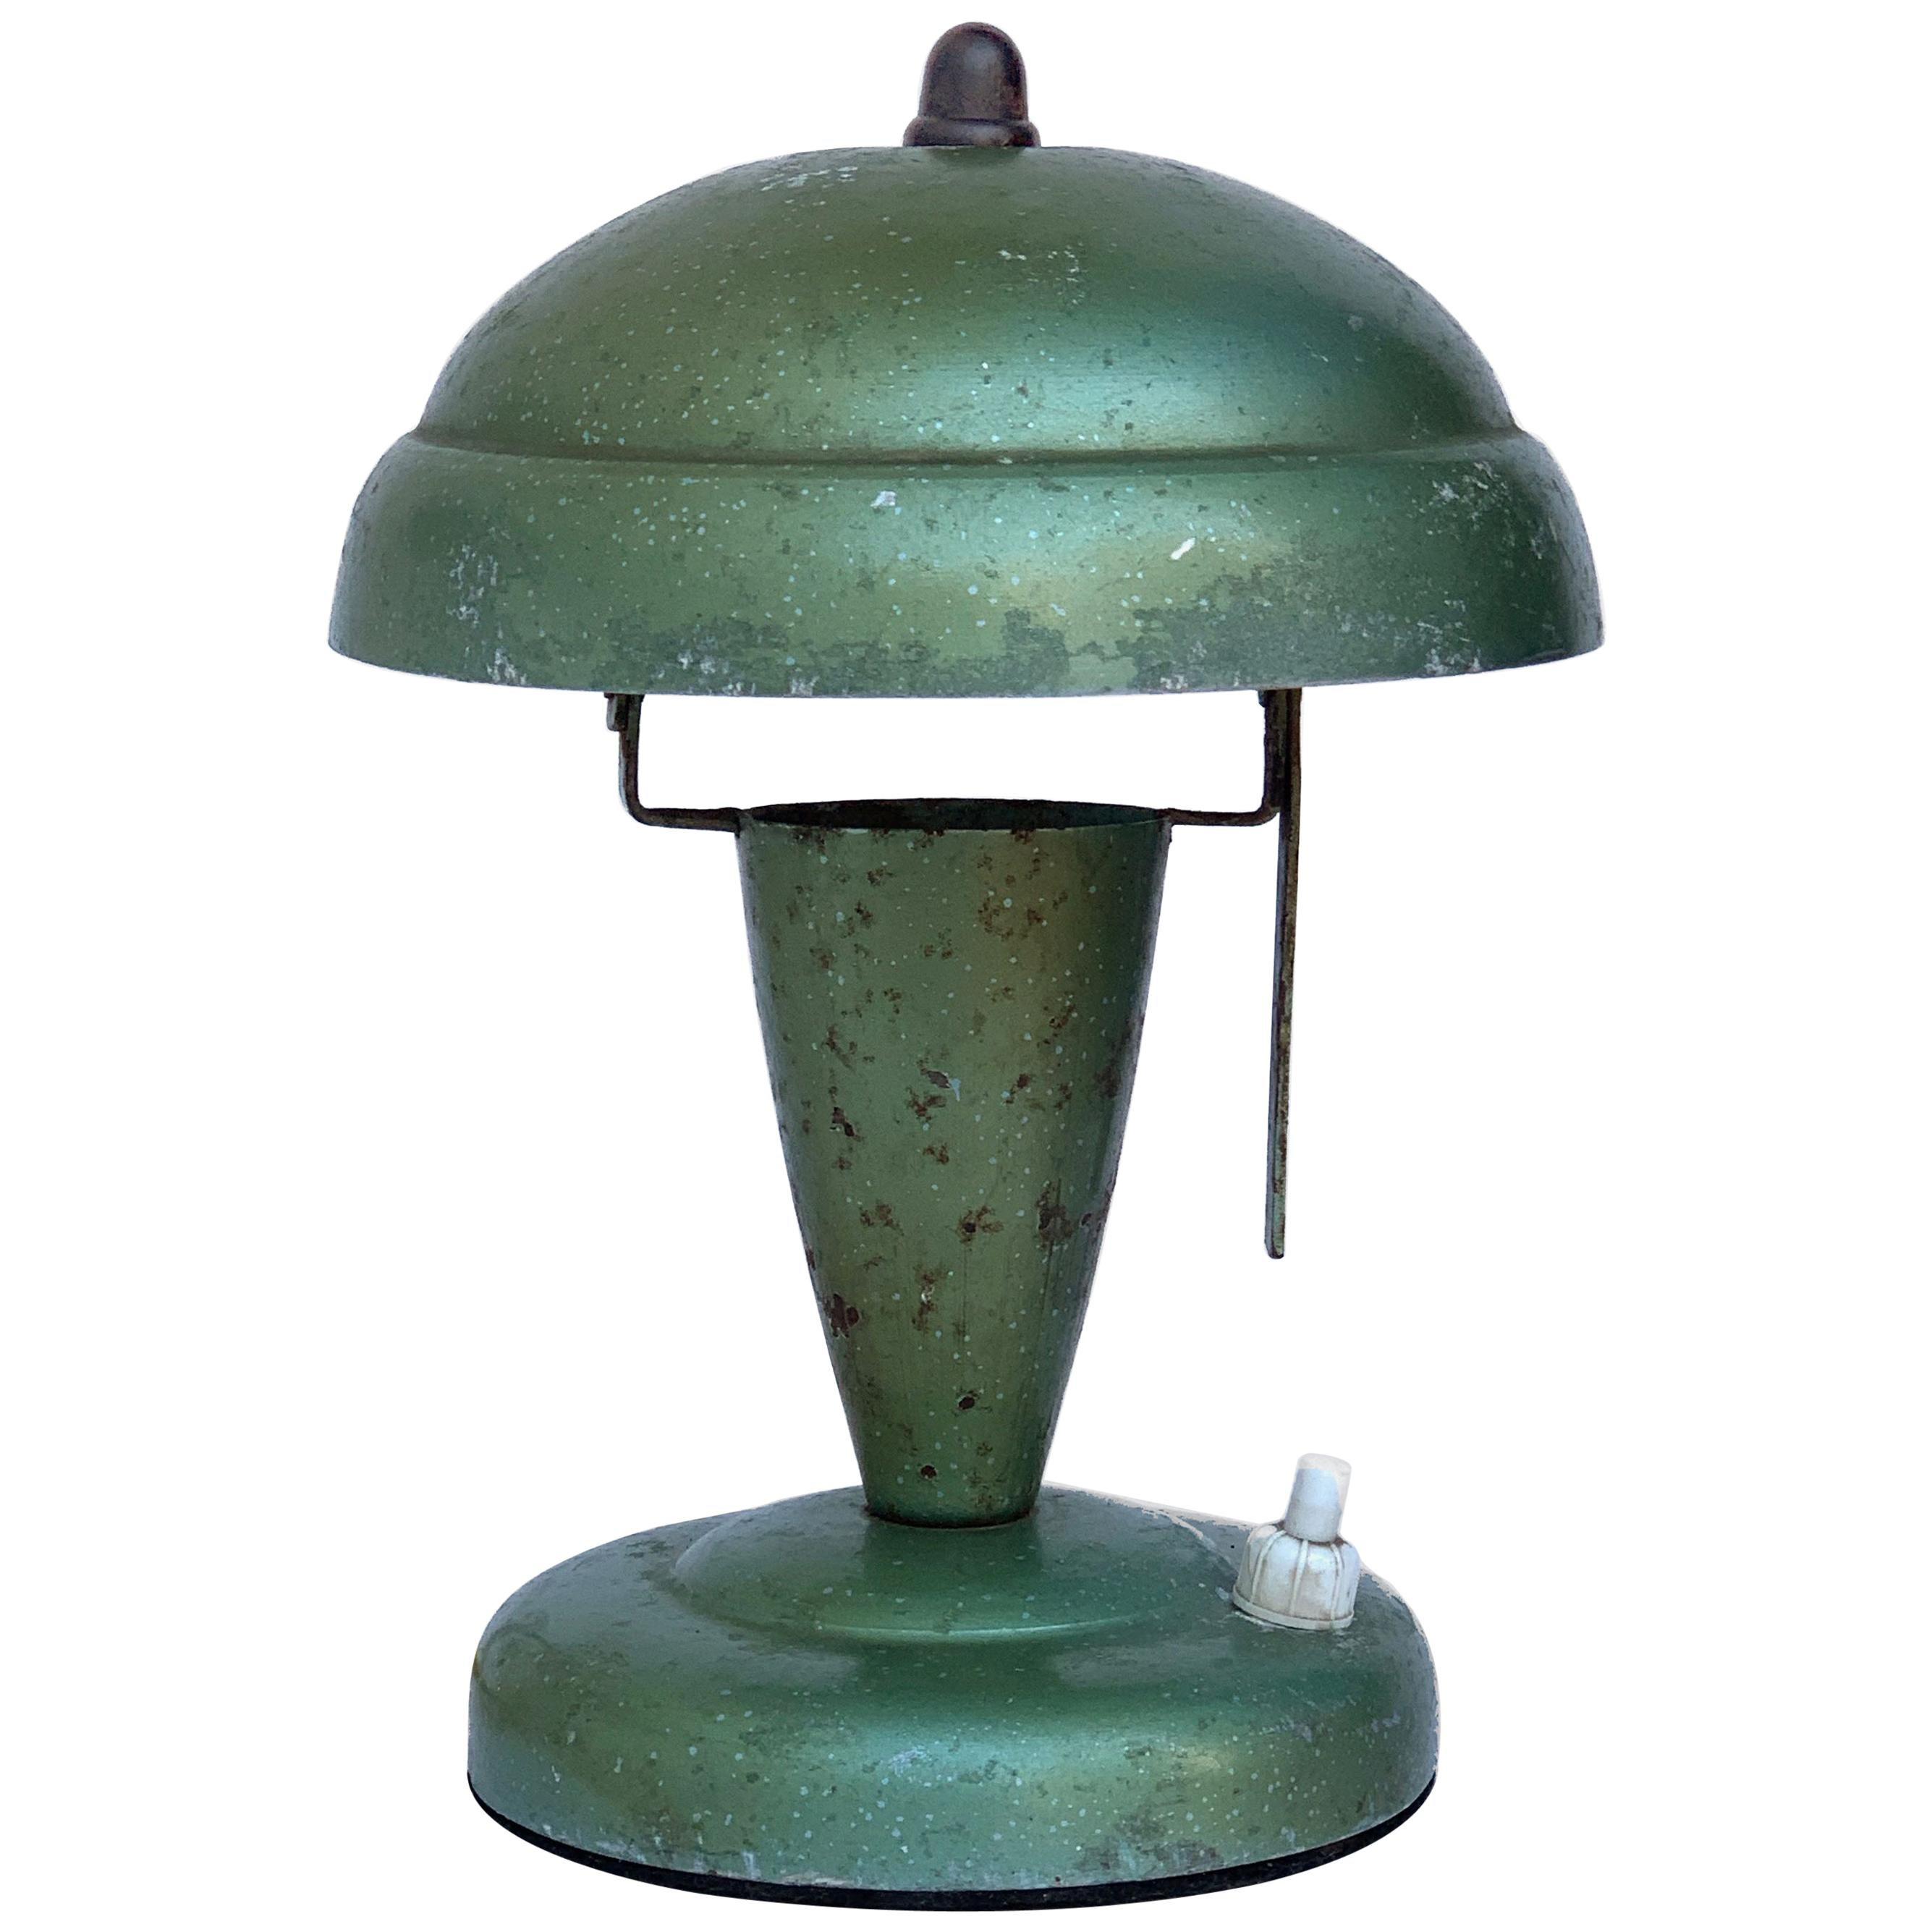 Art Deco Bedside Lamp, Attributable to Fog and Mørup 1930s, Lamp Table